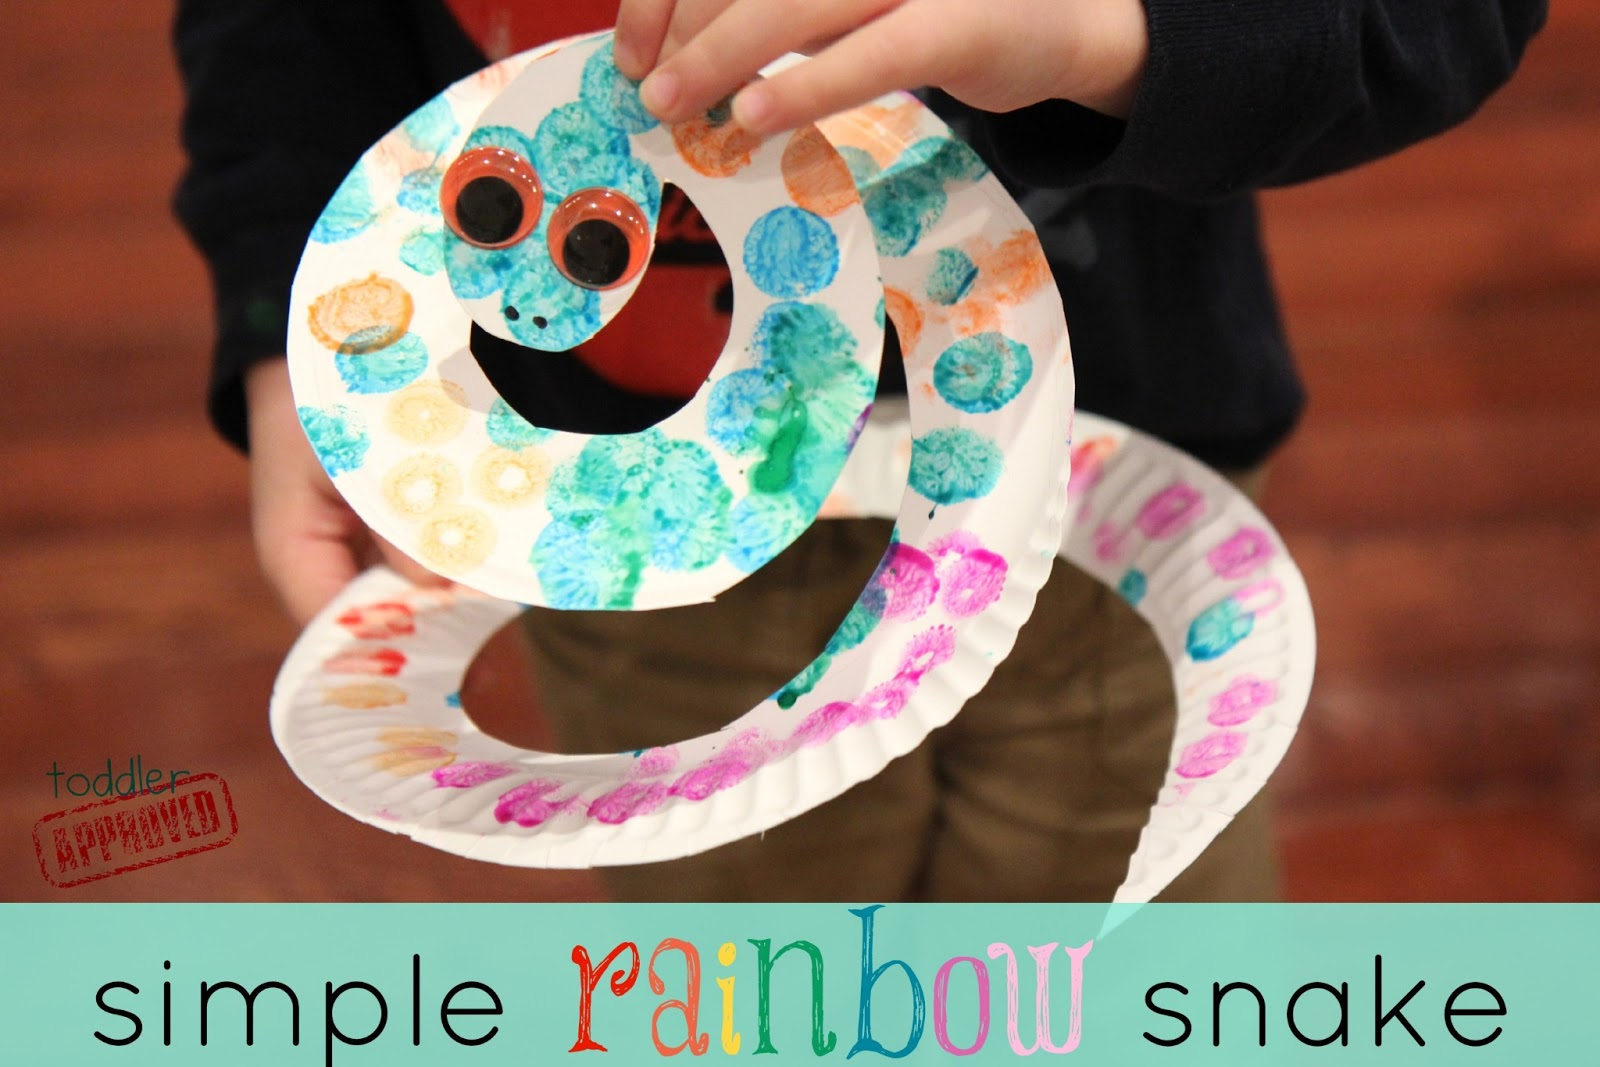 toddler approved mom and tot craft time simple rainbow snake